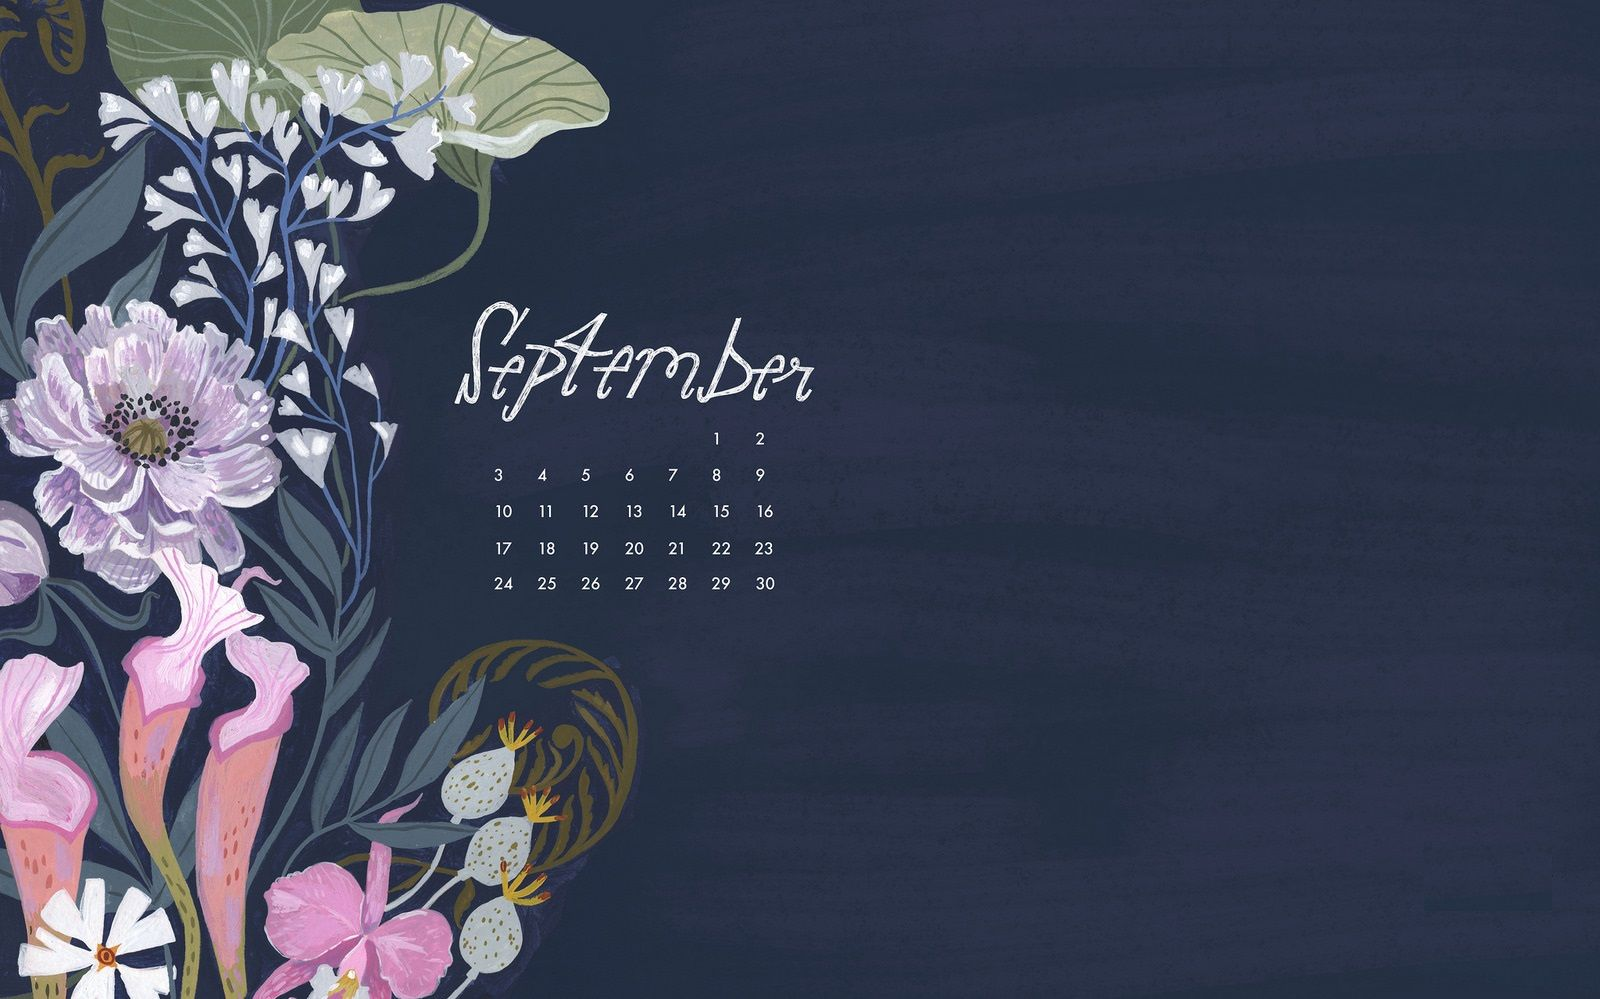 September 2018 Calendar Wallpapers Calendar Wallpaper September Wallpaper Wallpaper